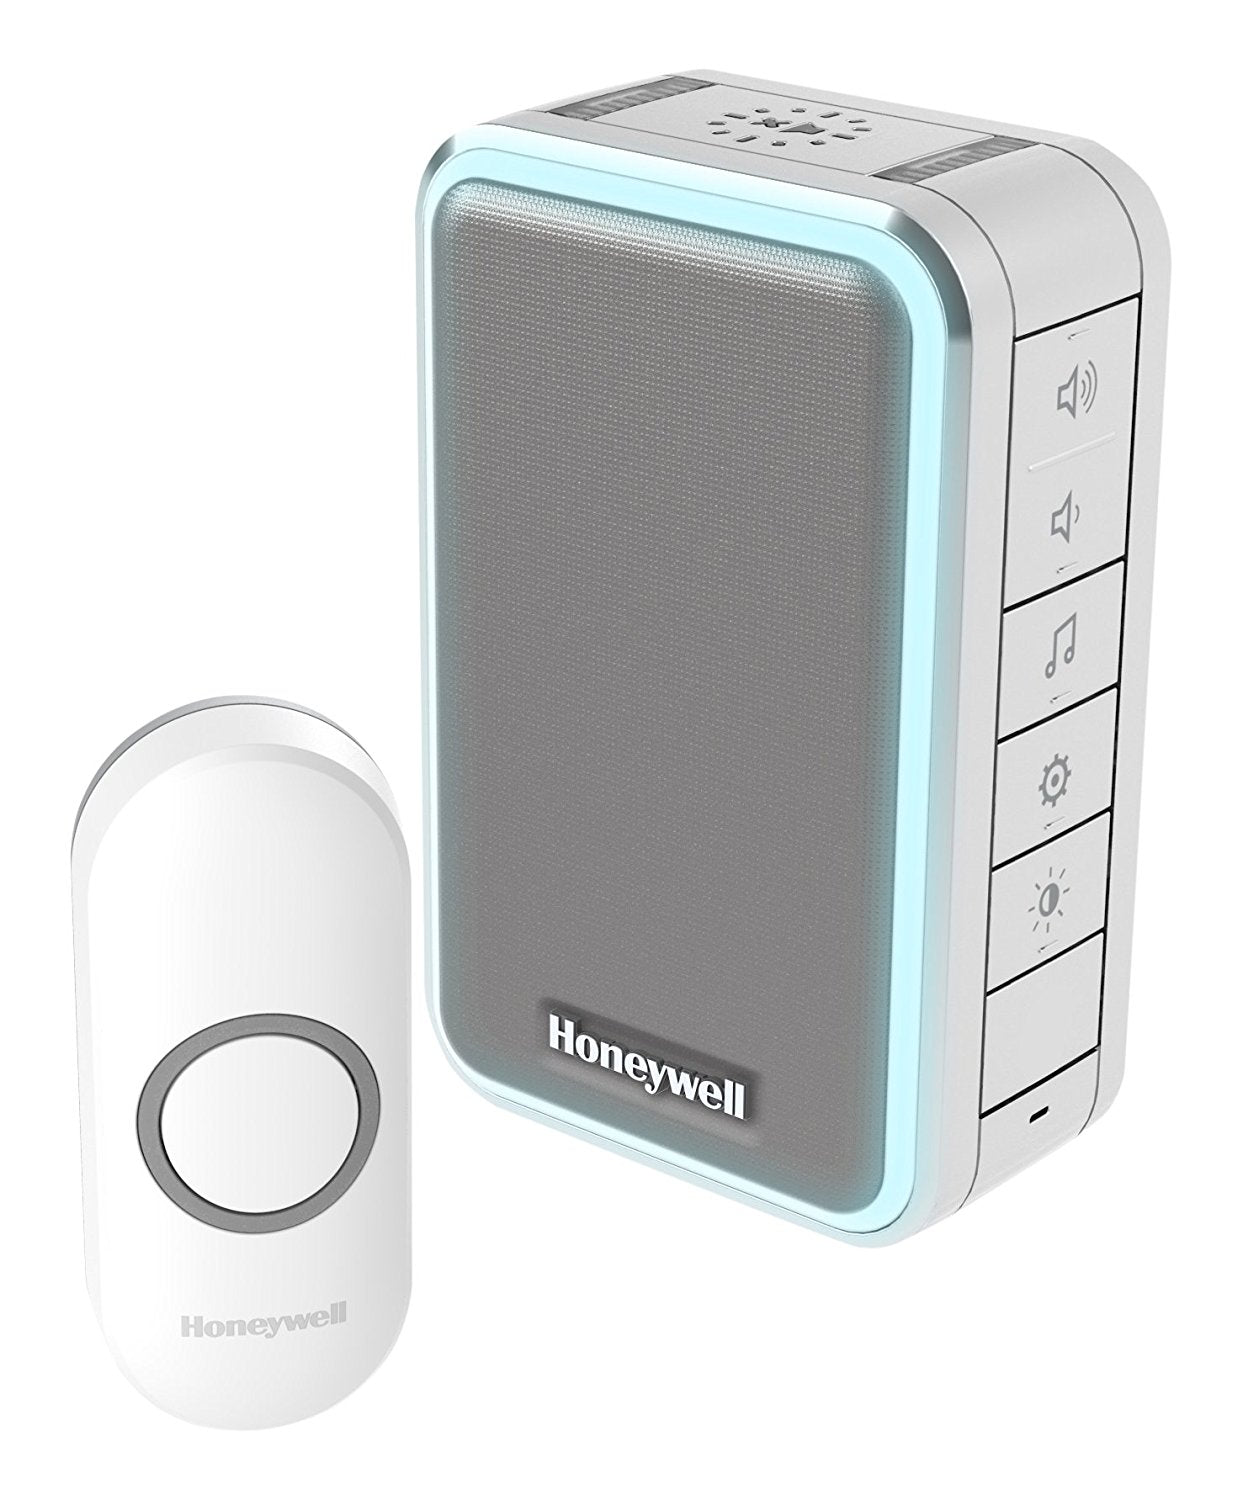 Honeywell DC315NG 1500 m 3 Series Silver LED Doorbell - Grey